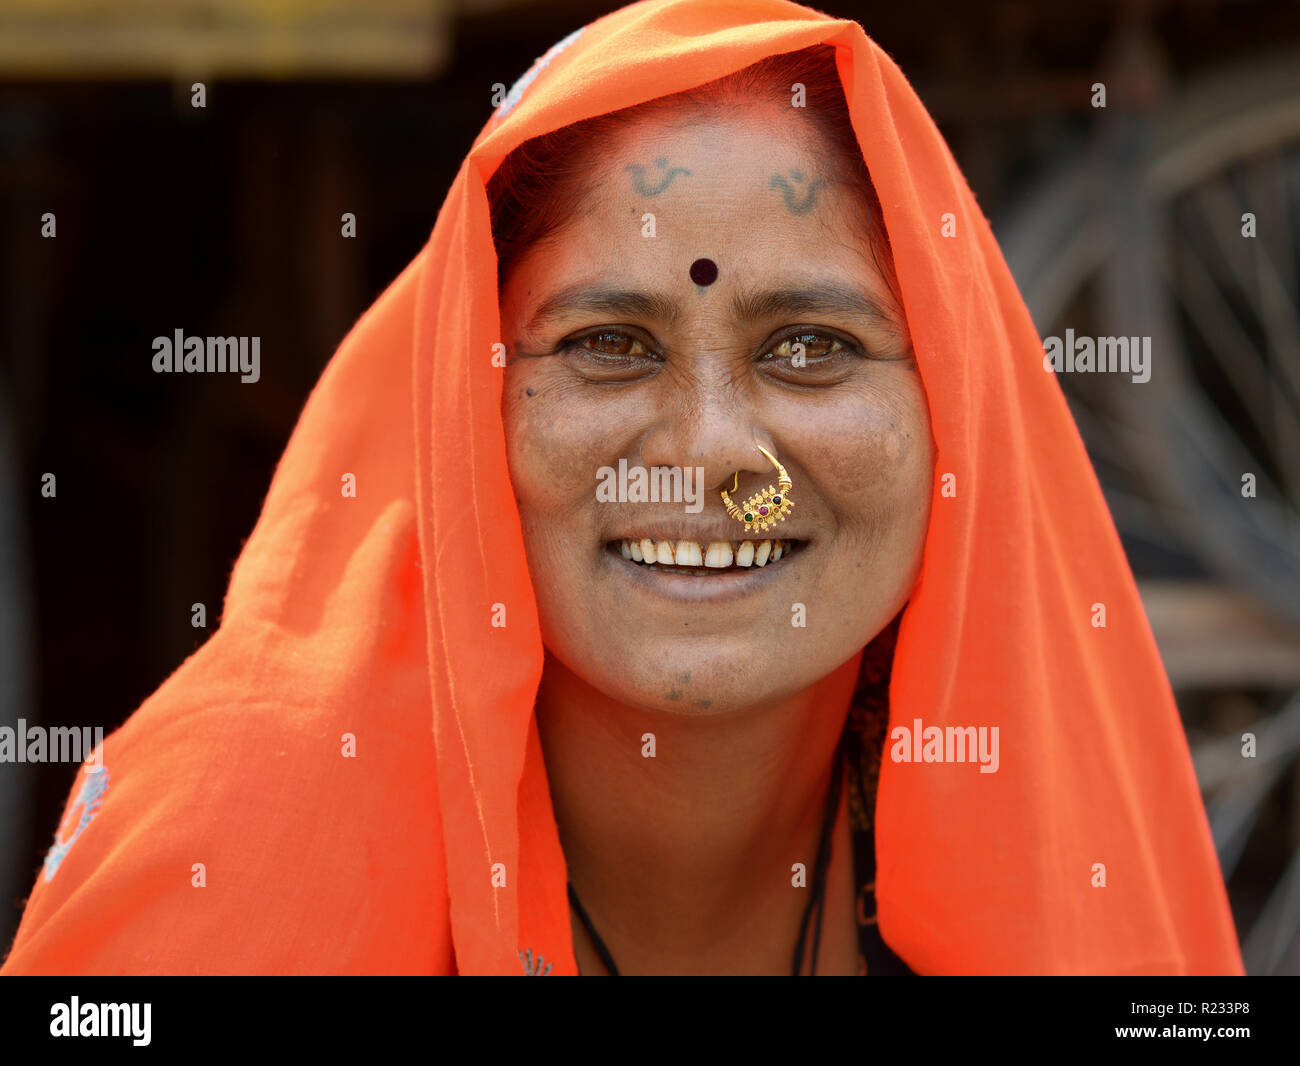 Middle-aged Rajasthani woman with traditional nose jewelry and tribal tattoos on chin and forehead wears an orange headscarf (dupatta). Stock Photo